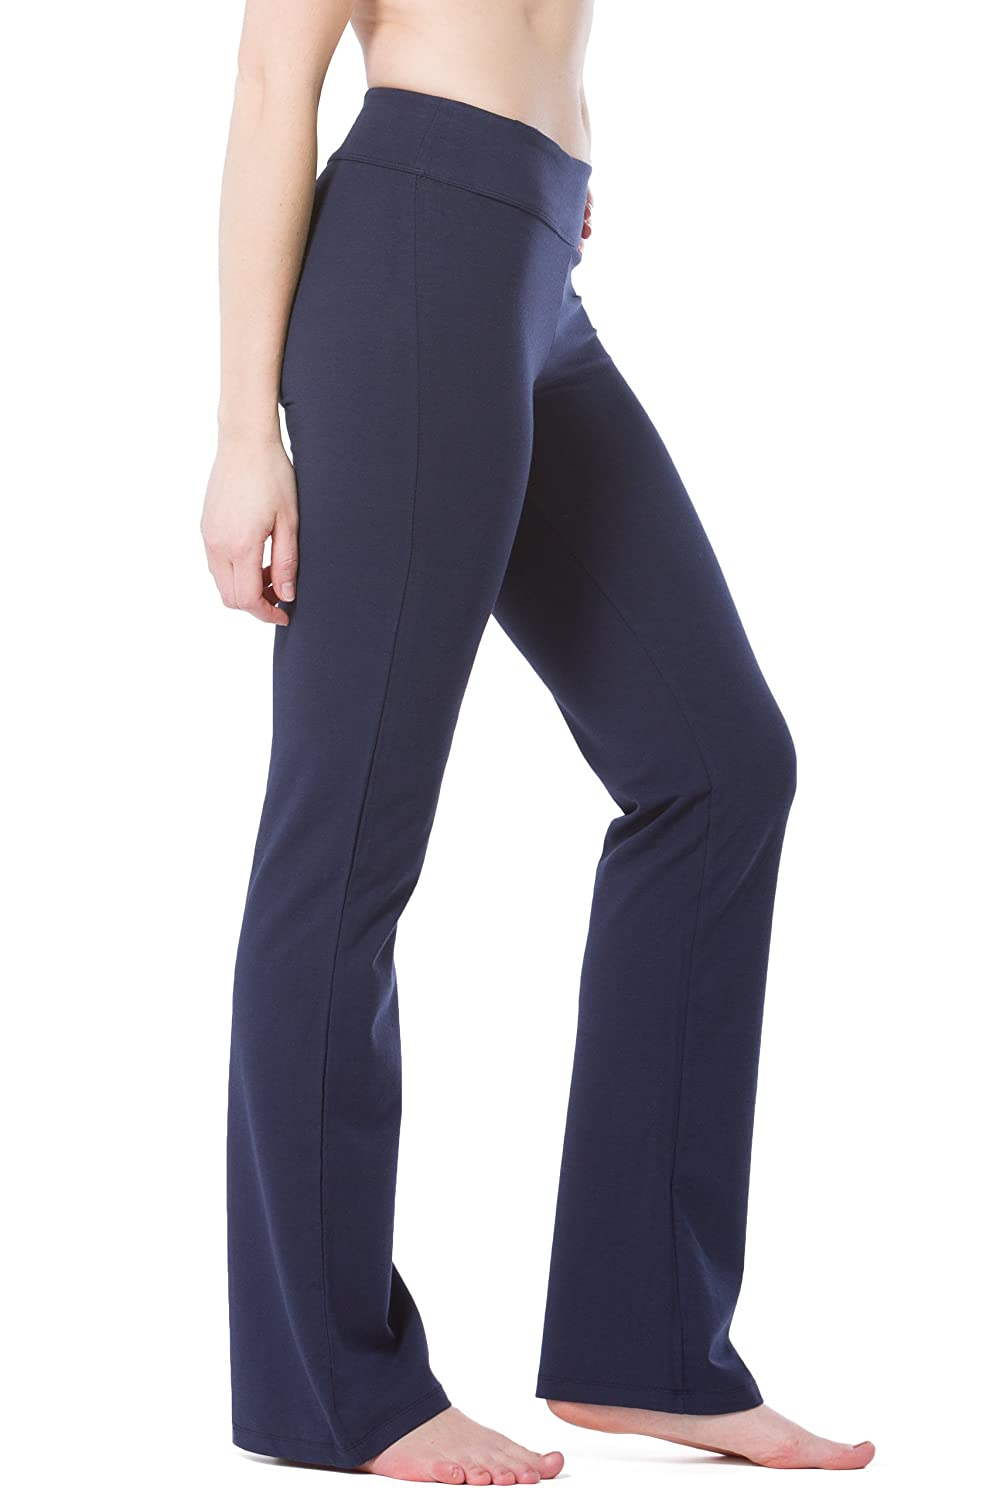 Fishers Finery Womens Ecofabric Classic Bootleg Yoga Pant; Athletic Casual Pant WV-01-YP1-049